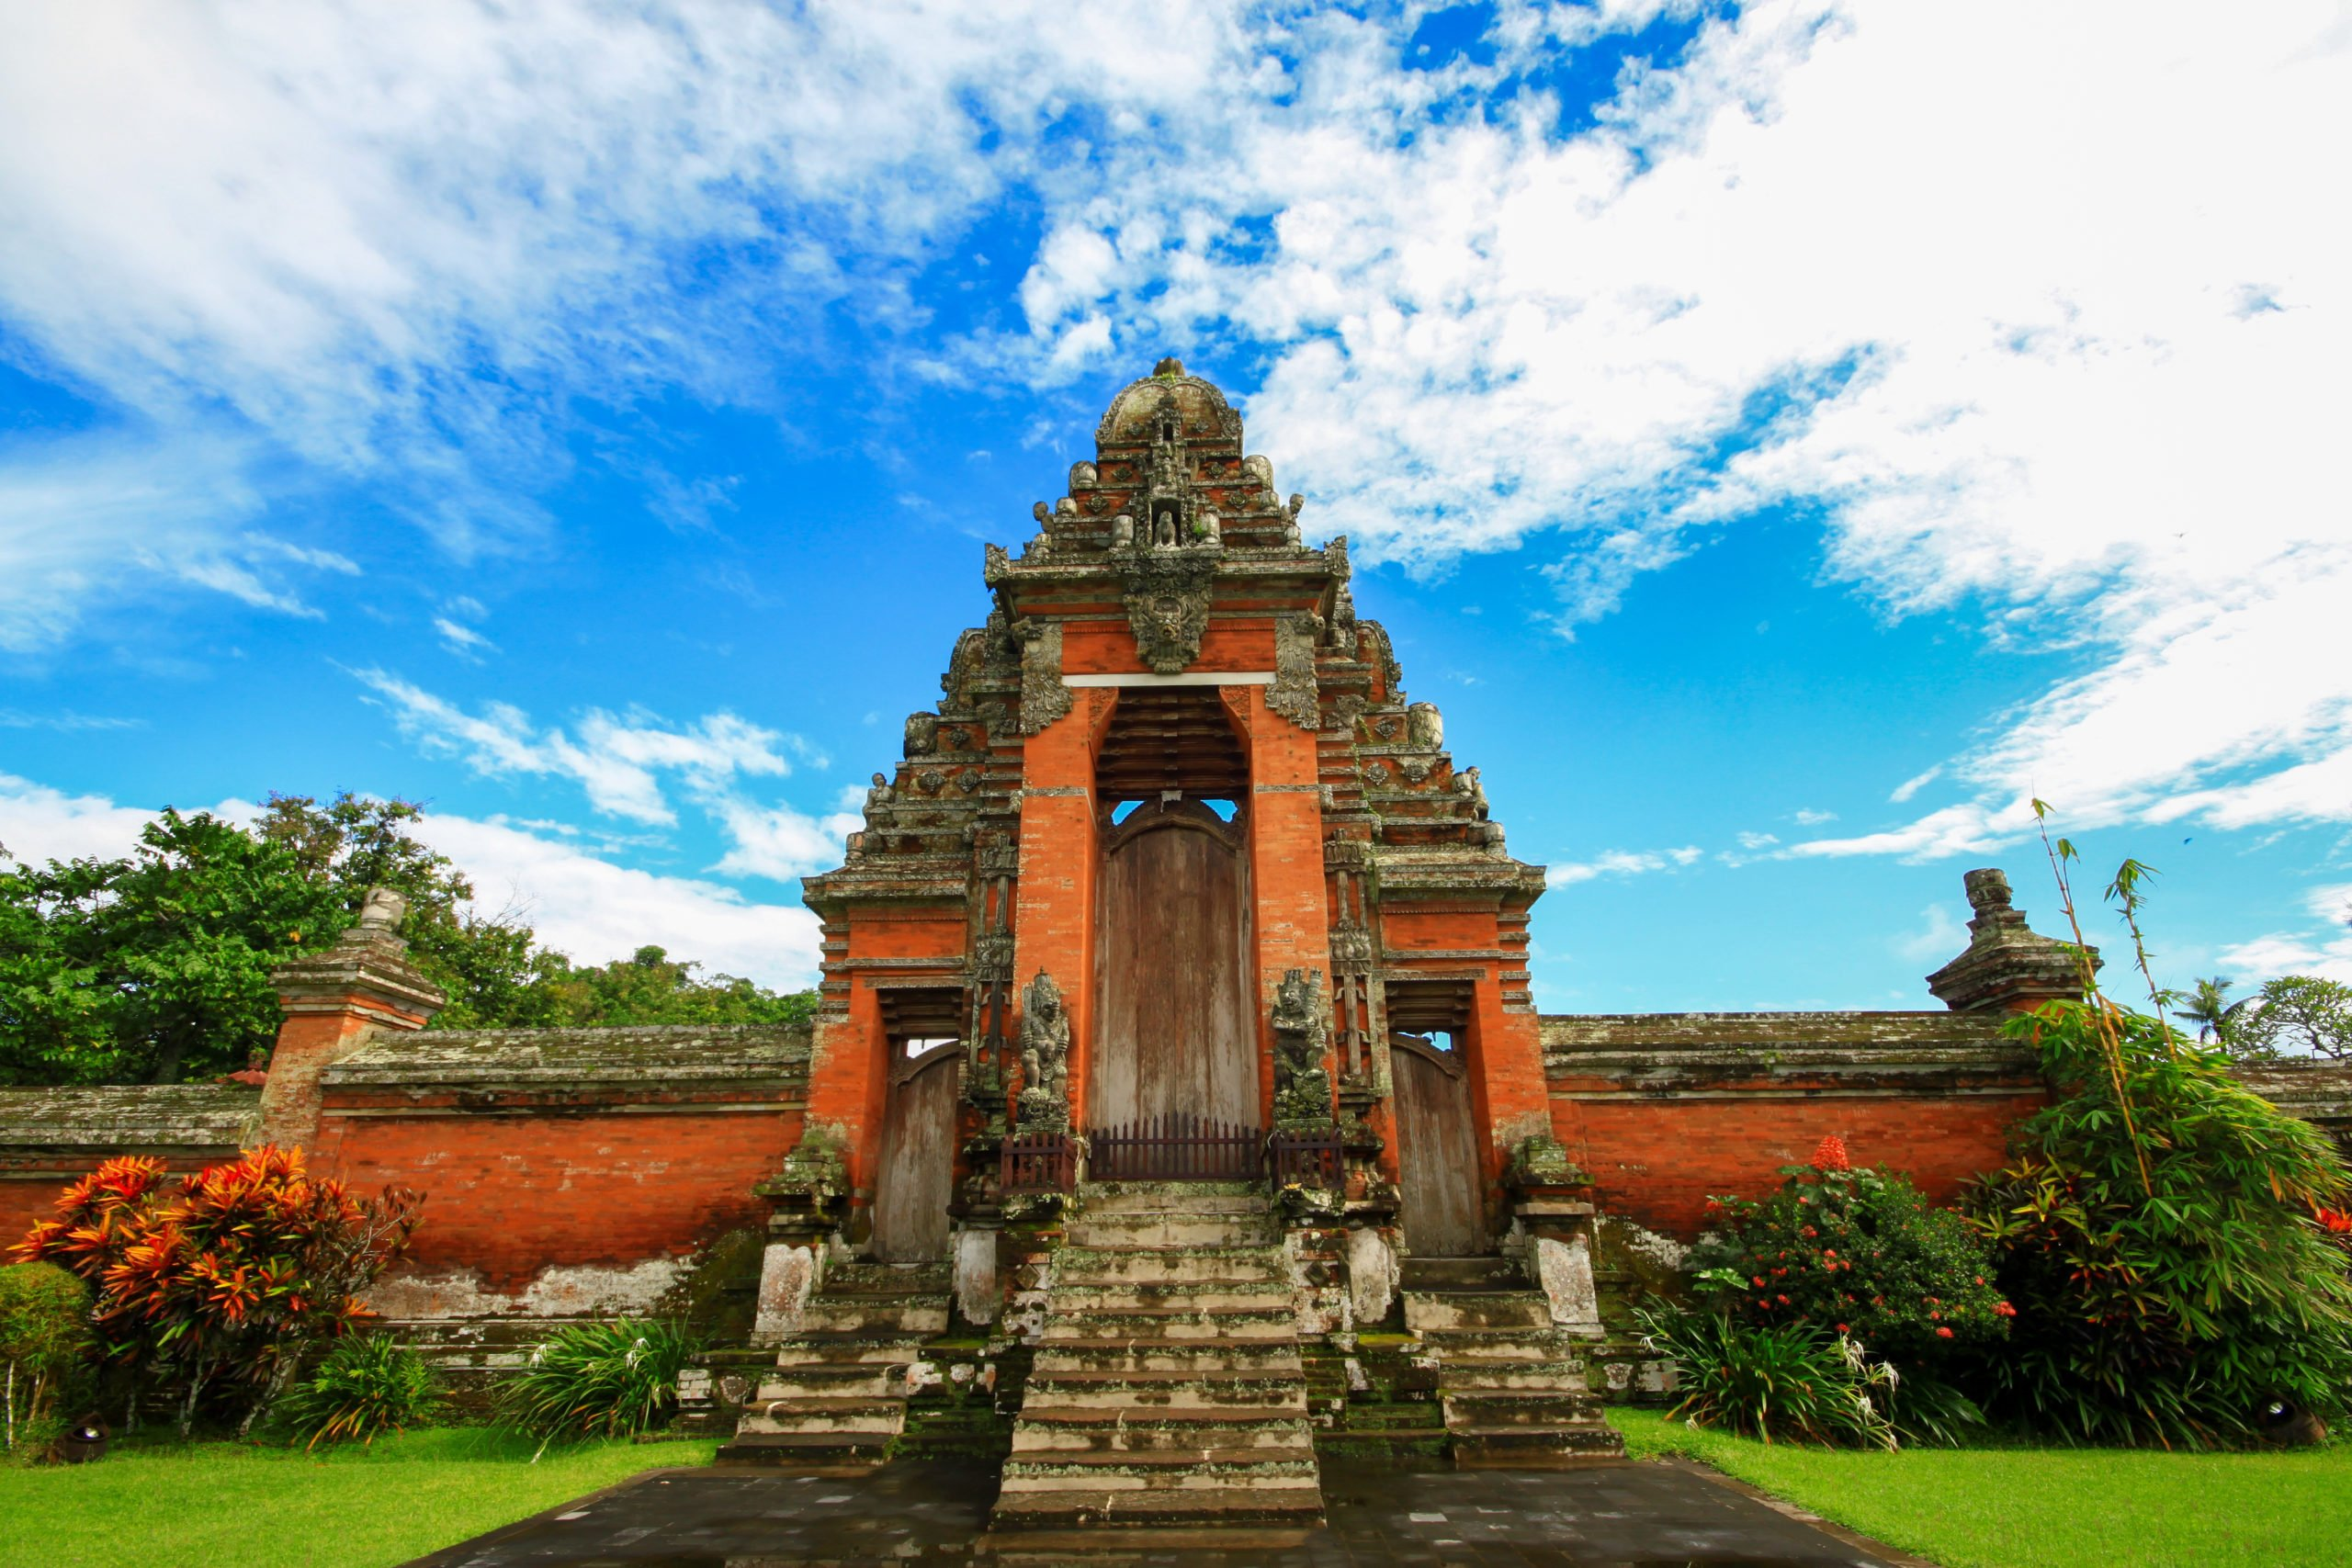 Discover With Your Local Guide The Royal Temple Of Mengwi During The Cultural Heritage Tour From Ubud, Sanur, Nusa Dua, Tanjung Benoa, Seminyak